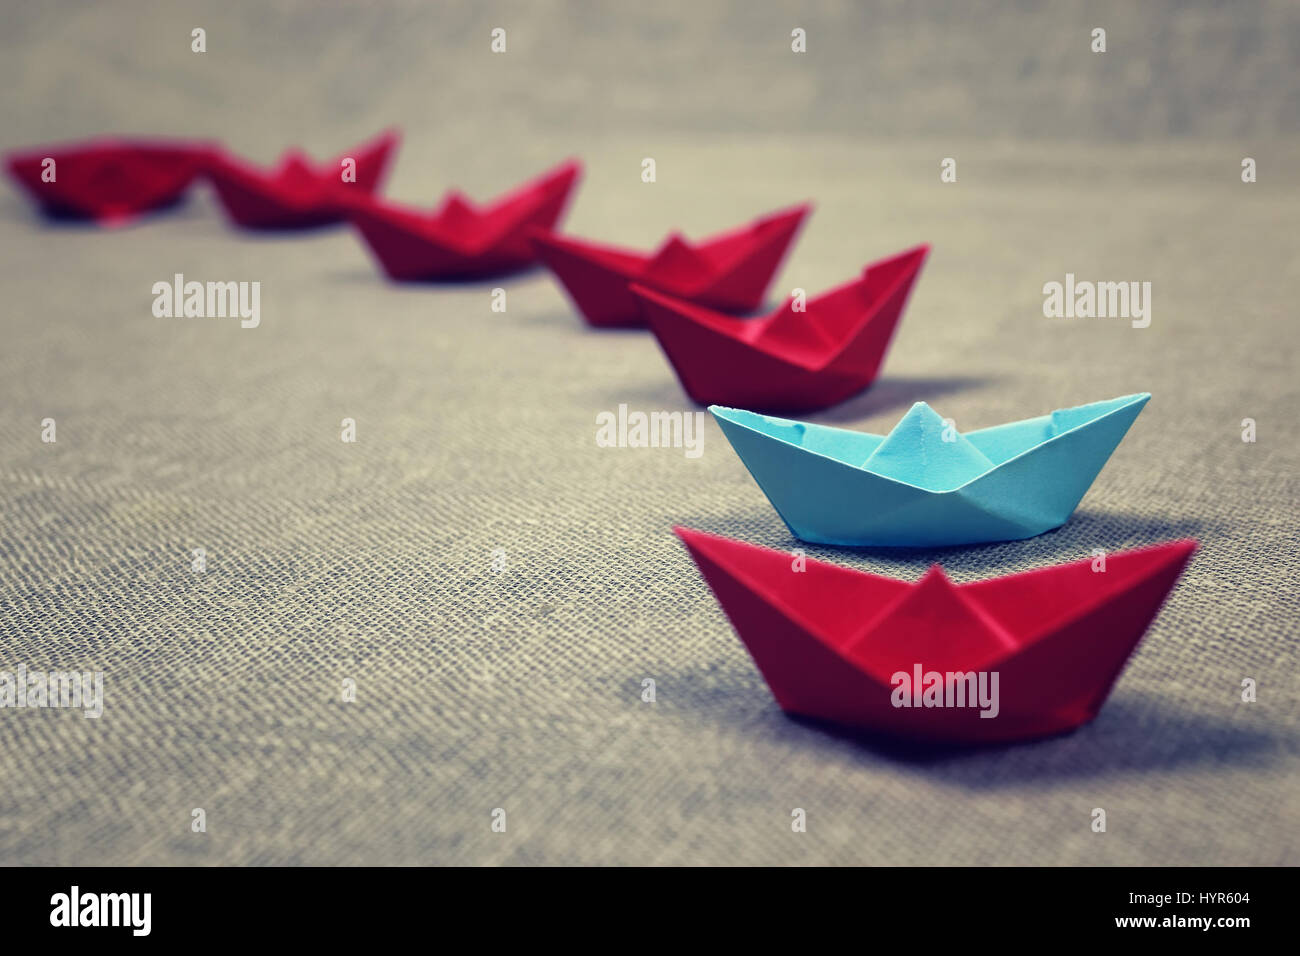 colored paper boats - Stock Image